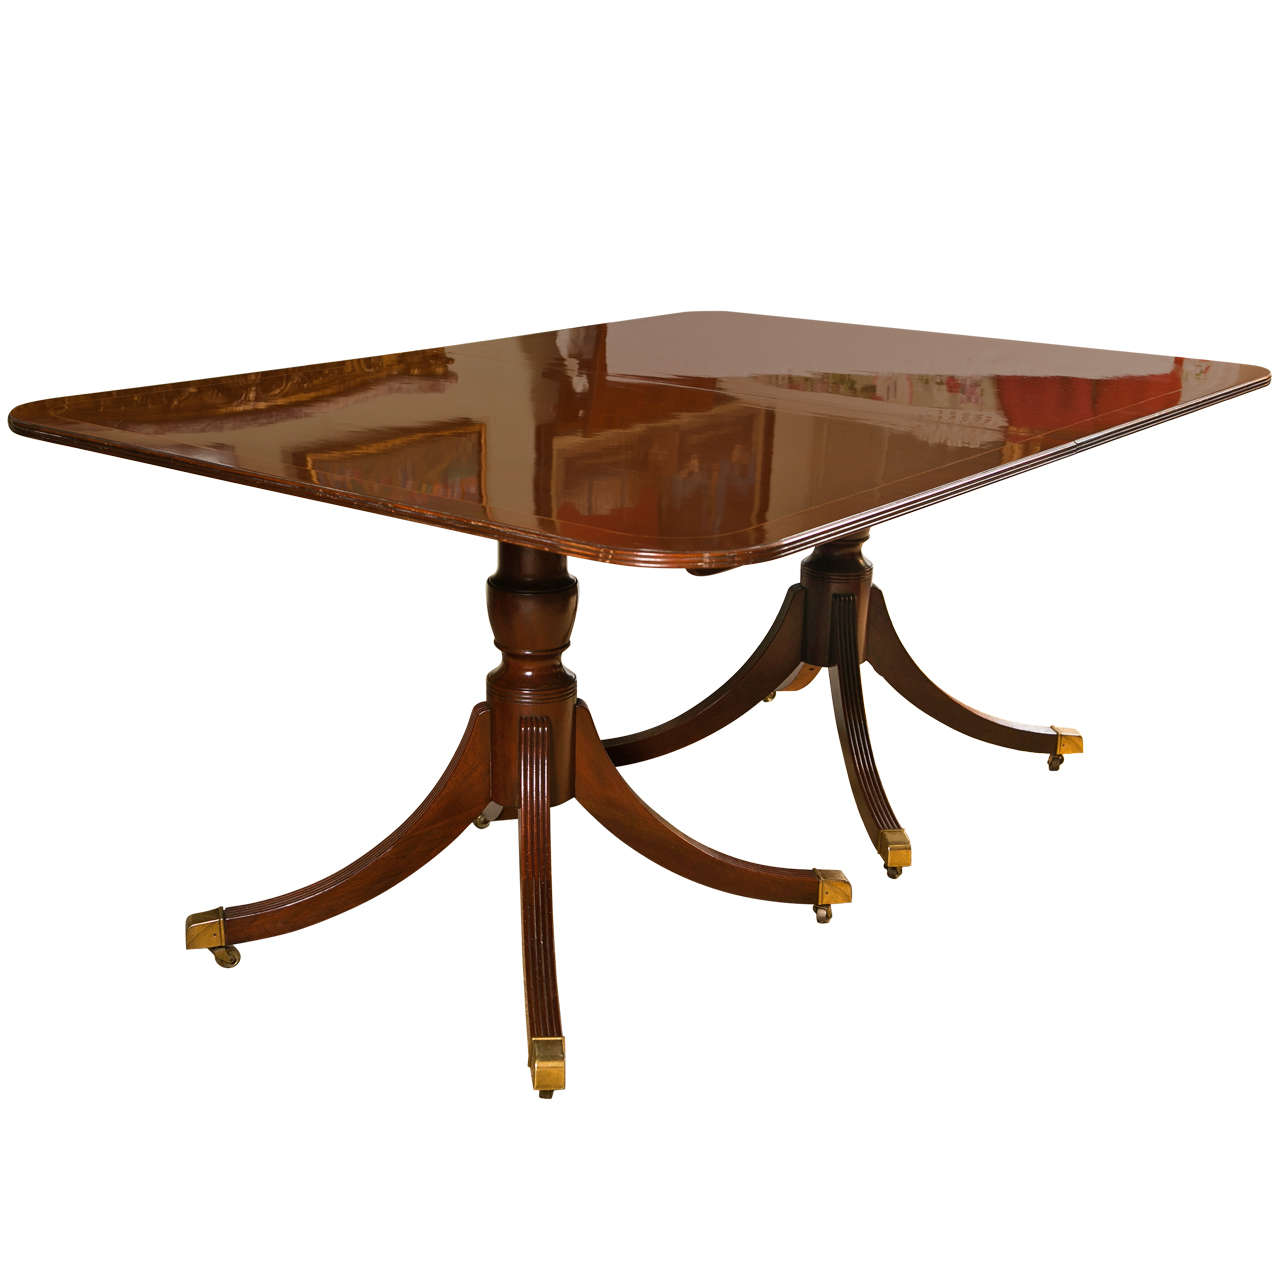 Regency style mahogany 2 leaf dining table by baker at 1stdibs for Dining room table 2 leaves